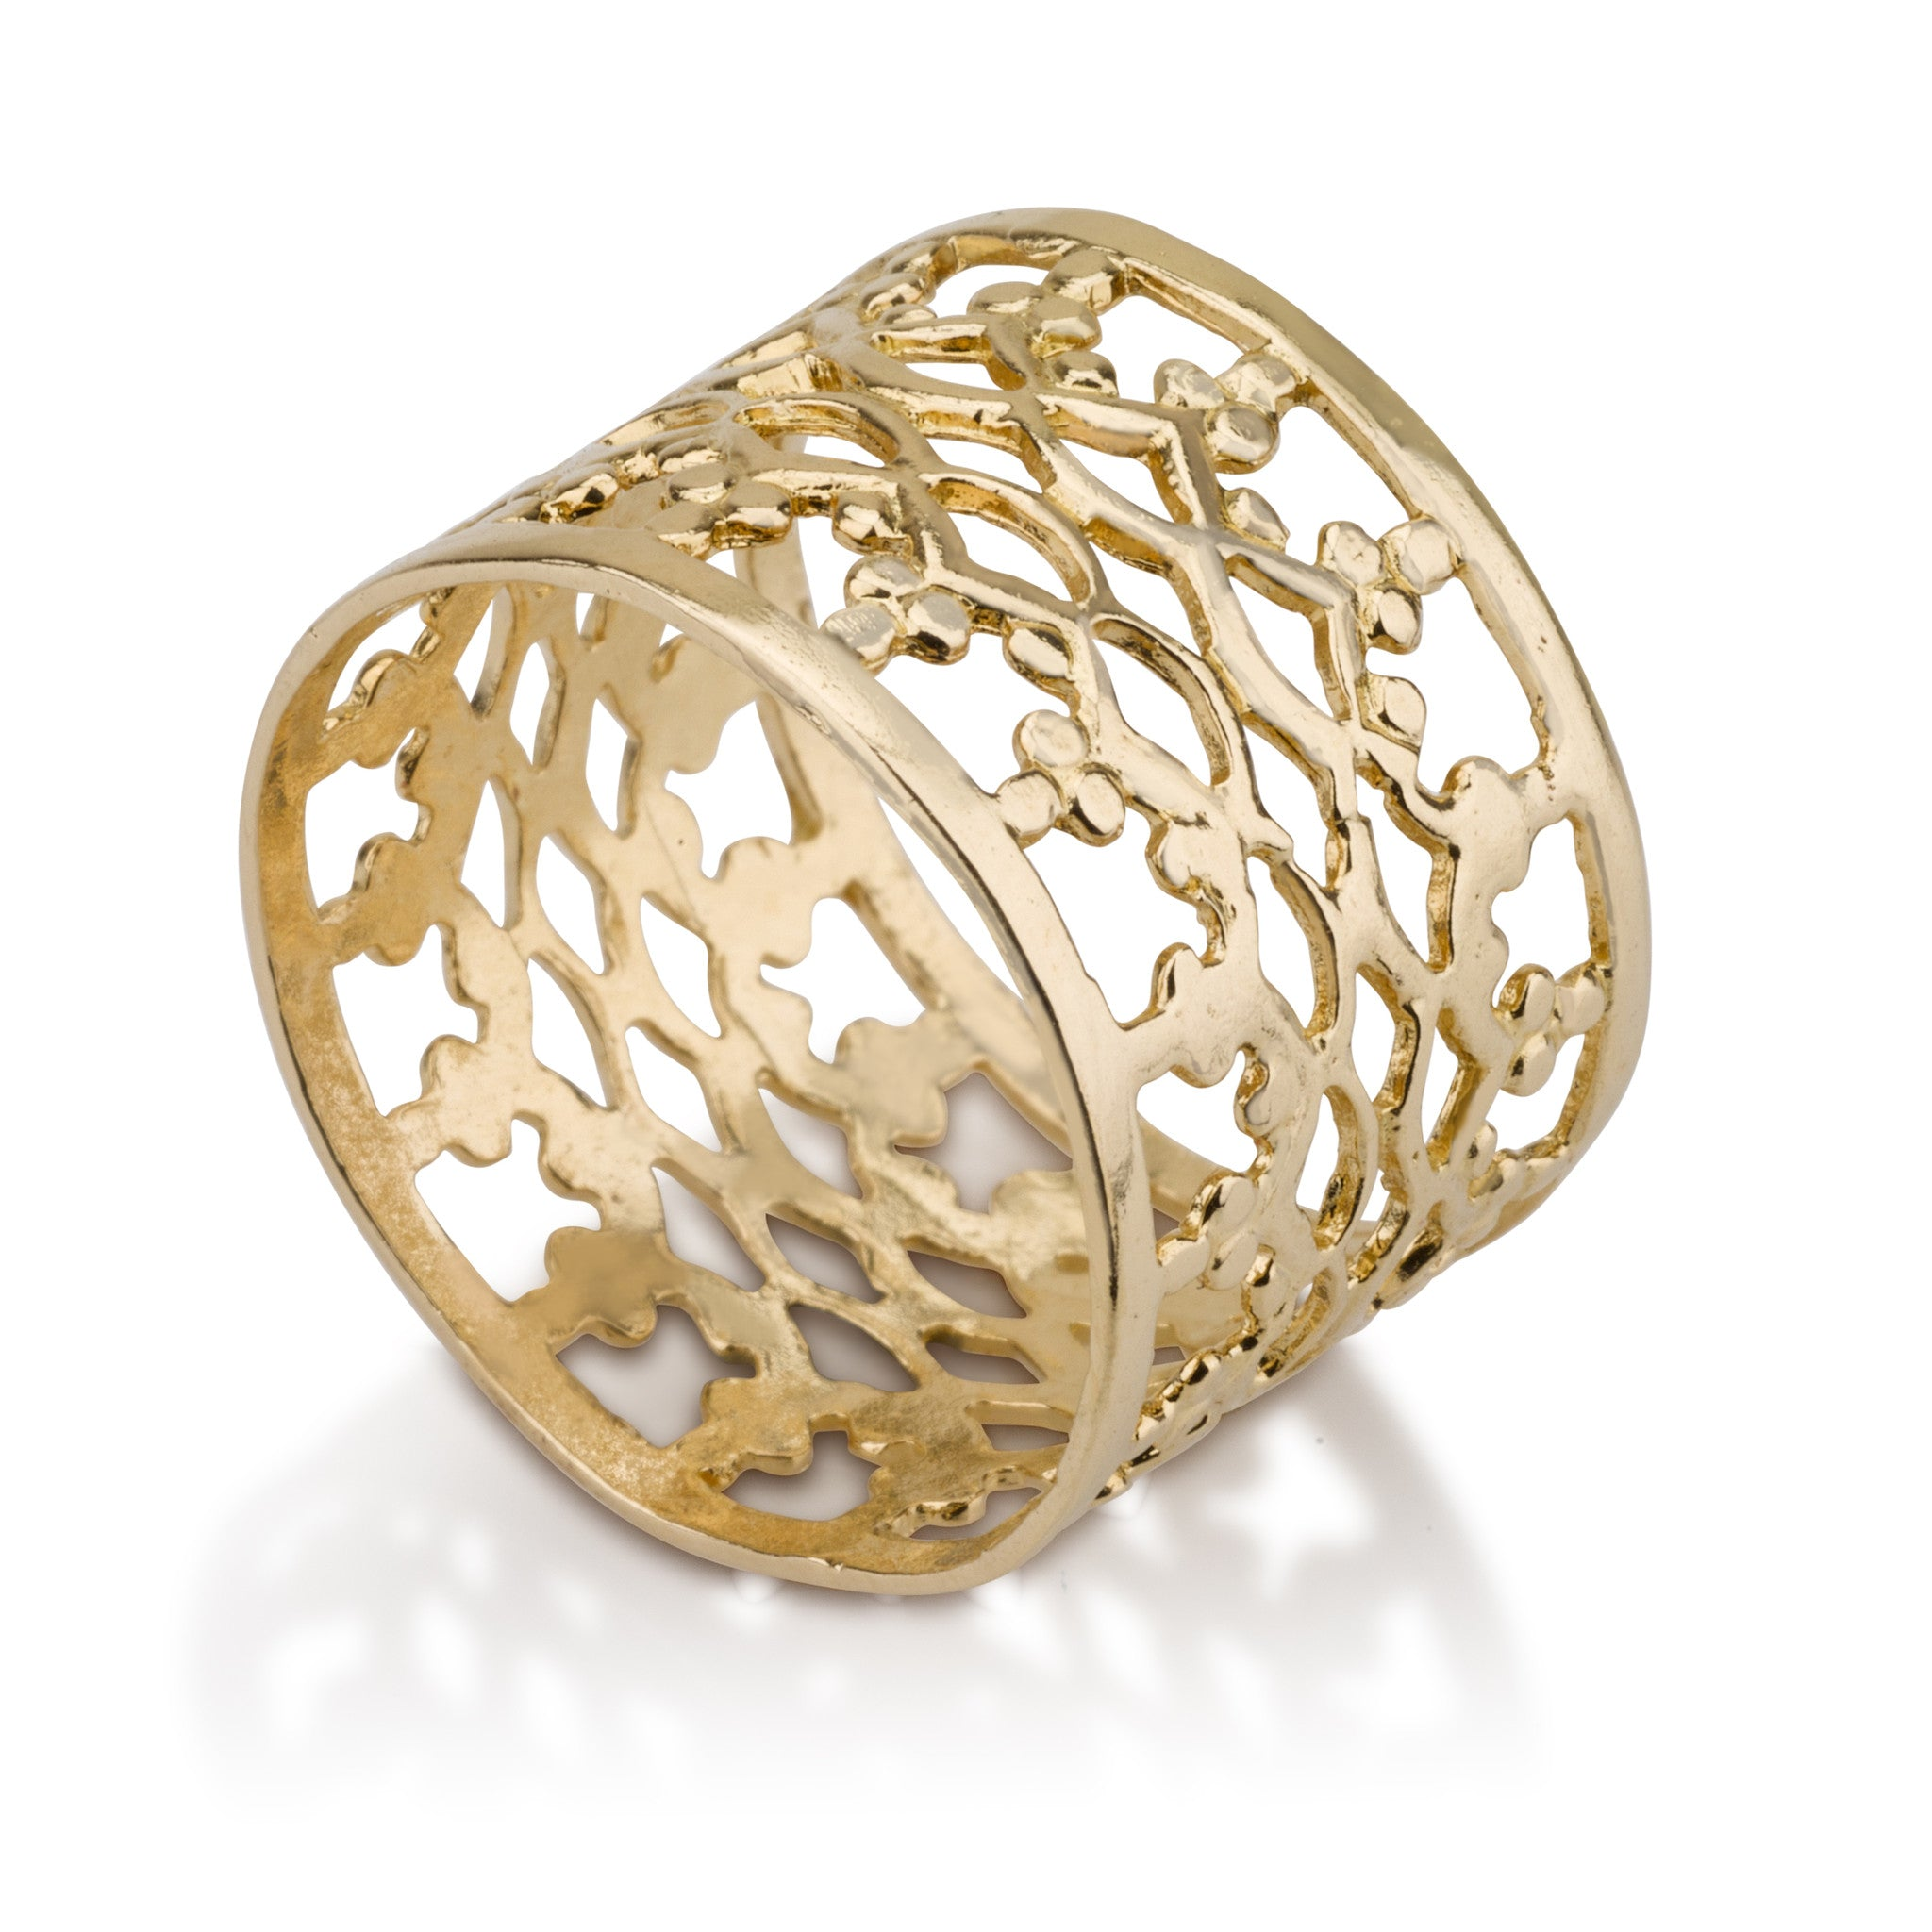 Rings - Royal Lace Ring